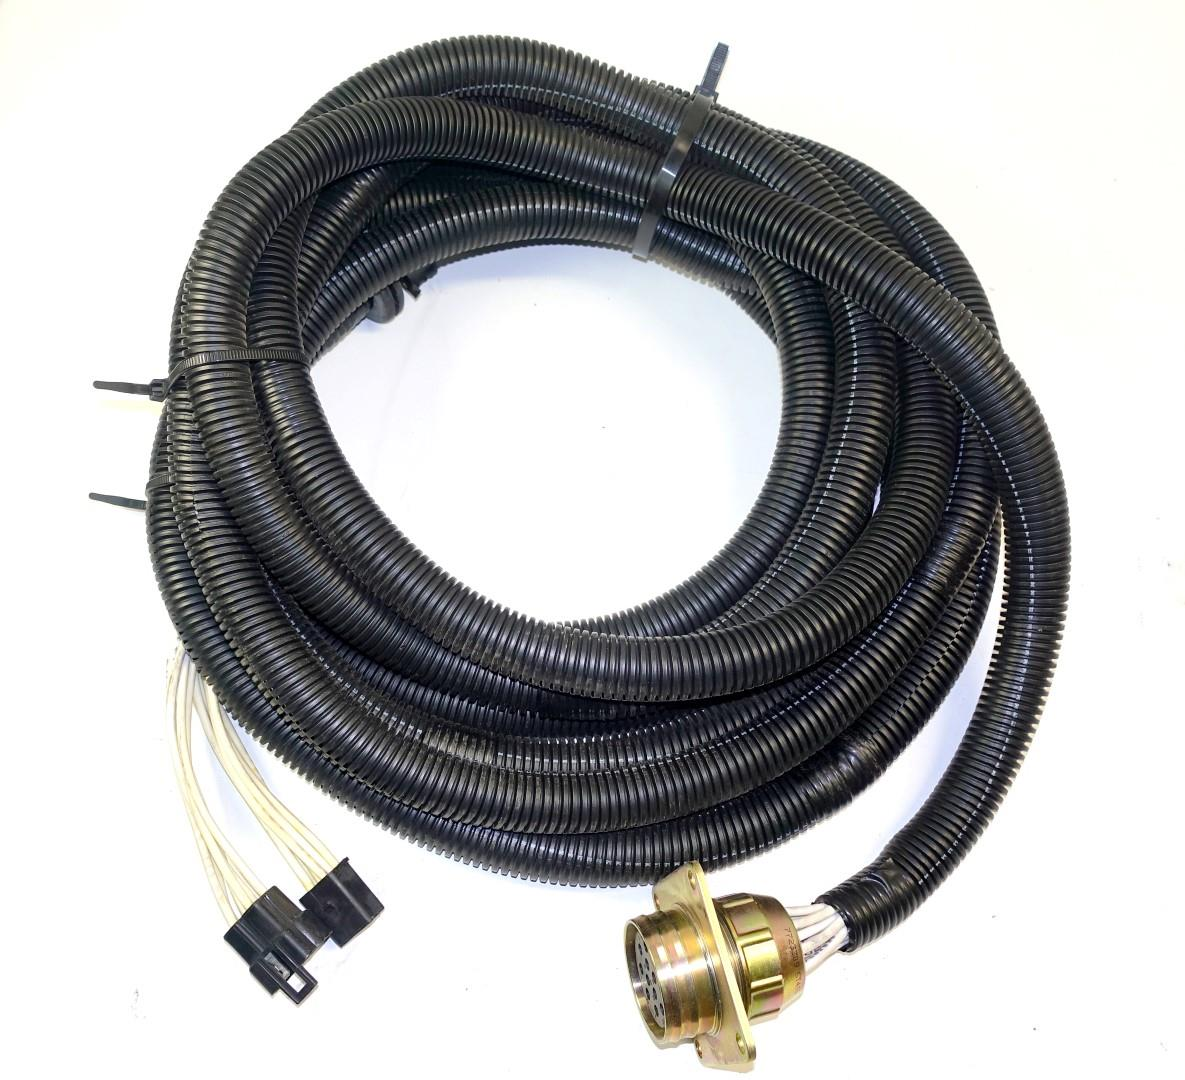 M9-947 | 5995-01-339-9681 Trailer Electrical Receptacle Cable(5) (Large).JPG